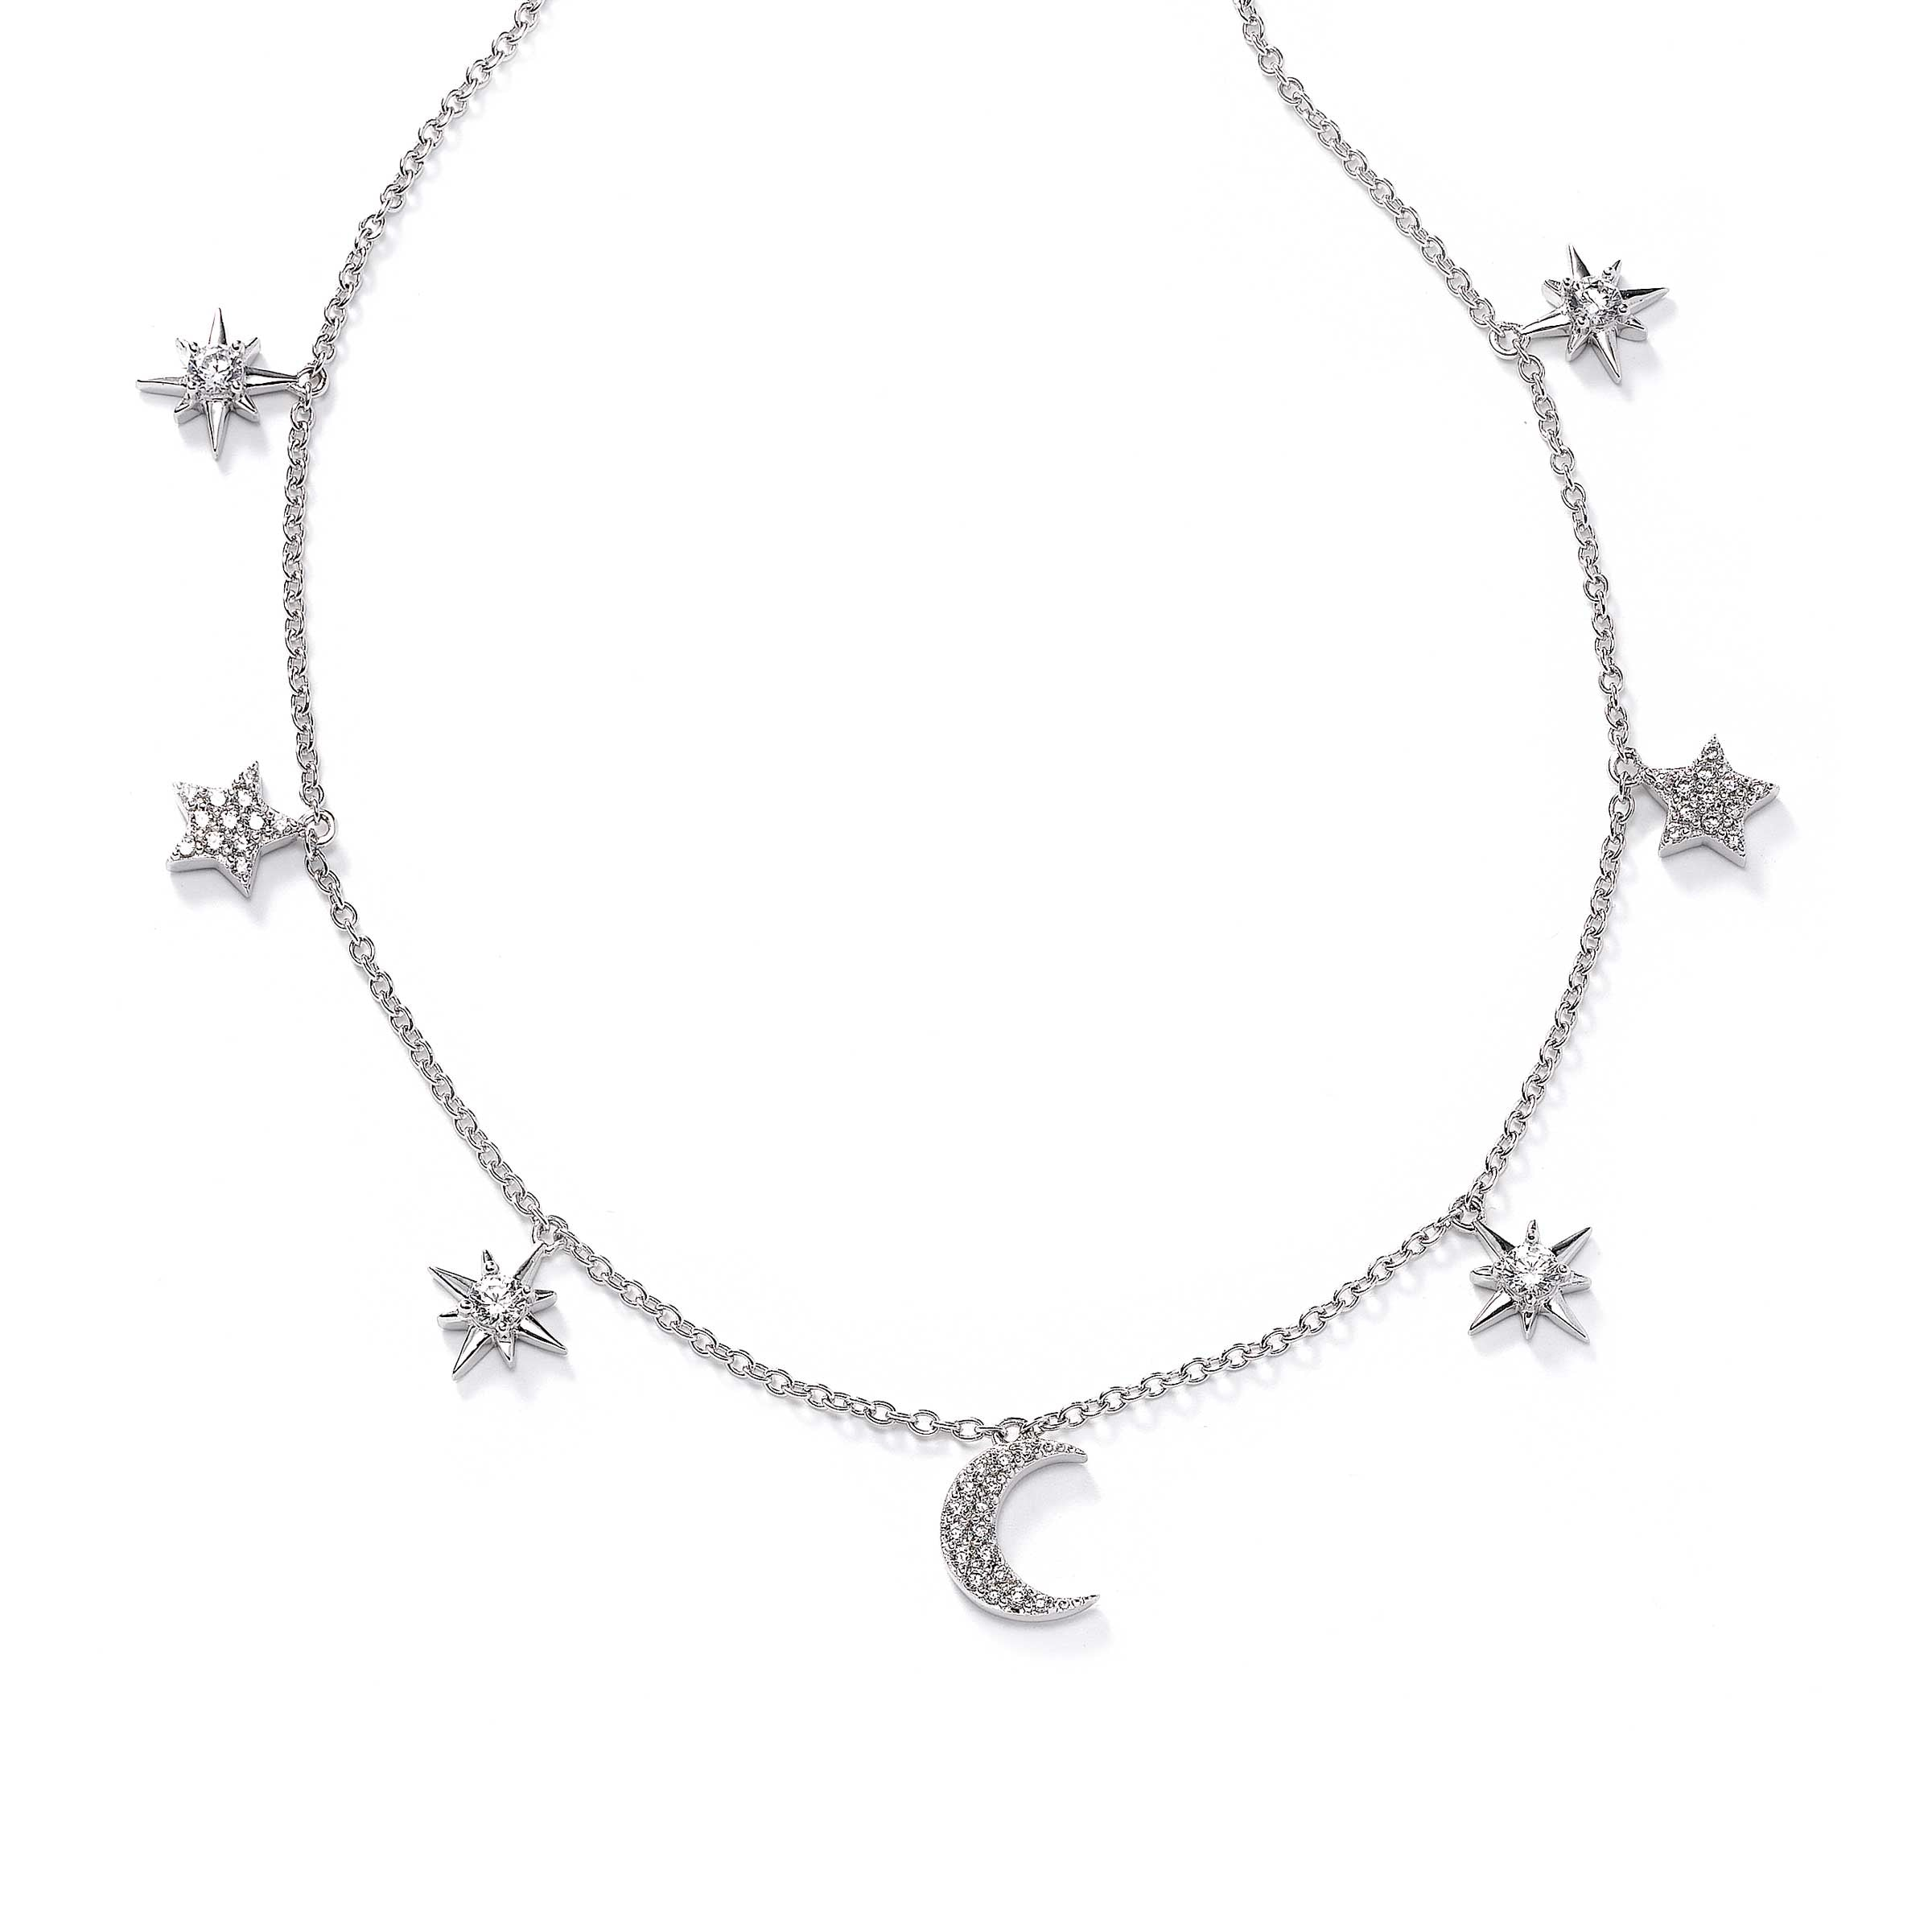 CZ Star and Moon Charm Necklace, 16 Inches, Sterling Silver